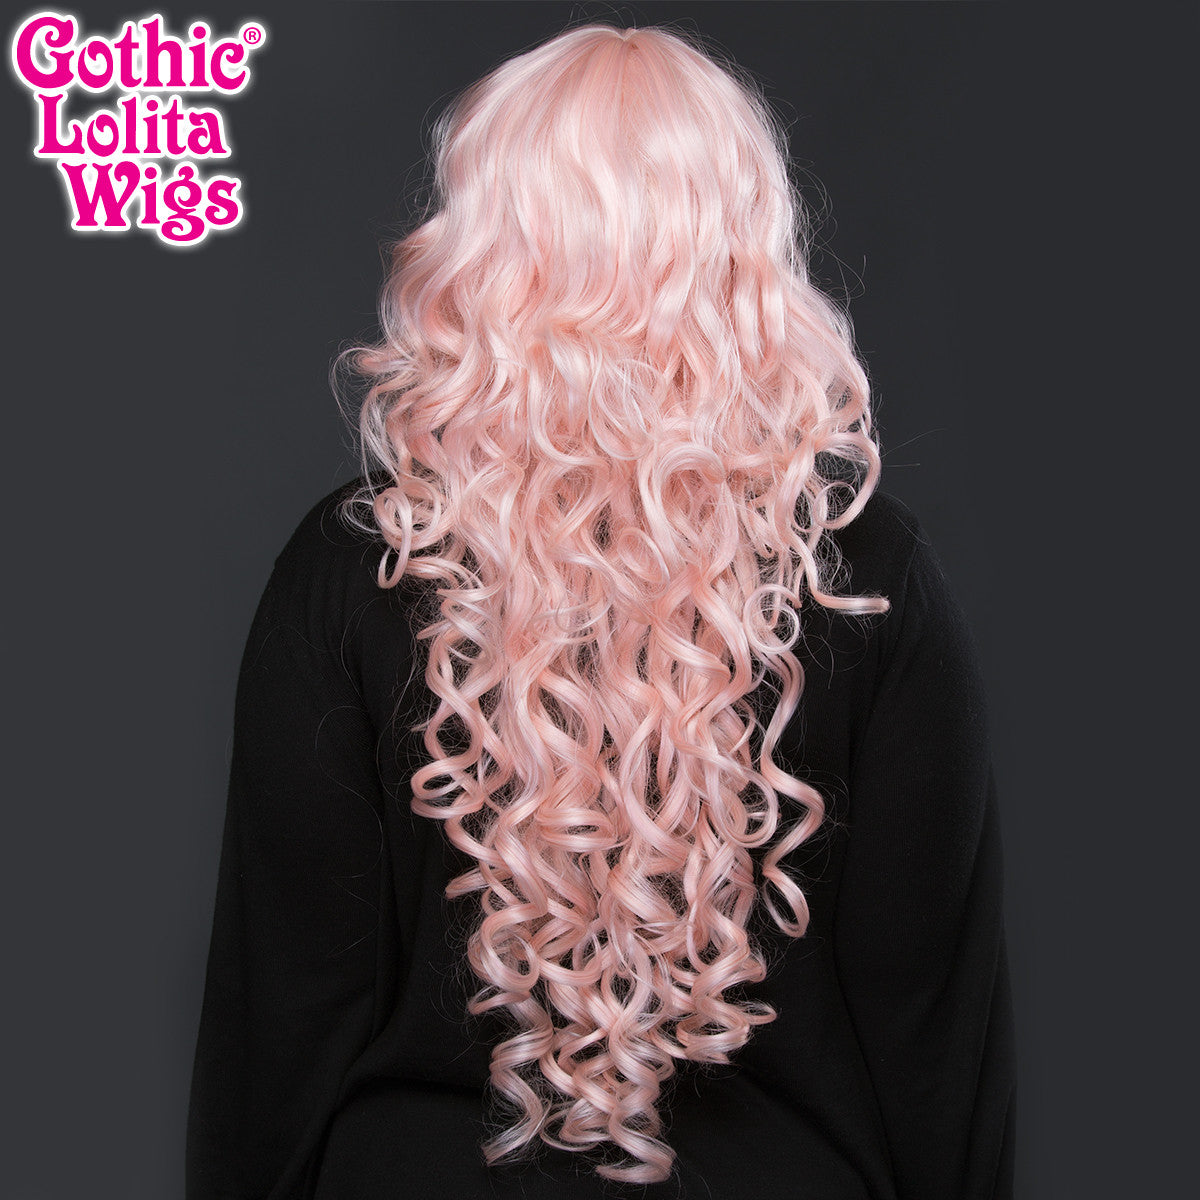 Gothic Lolita Wigs® <br> Duchess Elodie™ Collection - Powder Pink Mix -00058